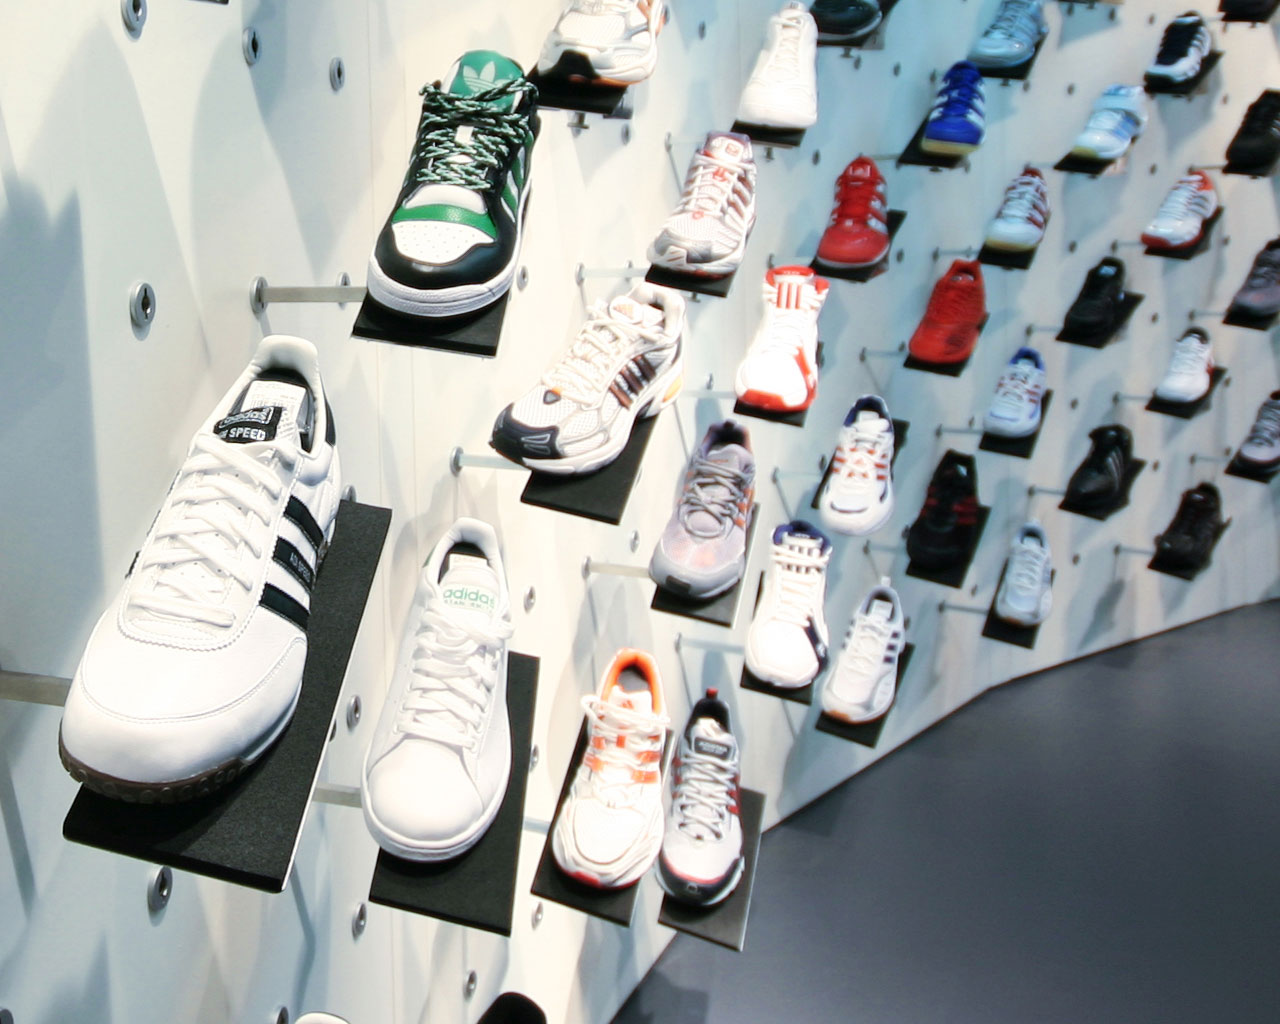 Adidas Shoes Display